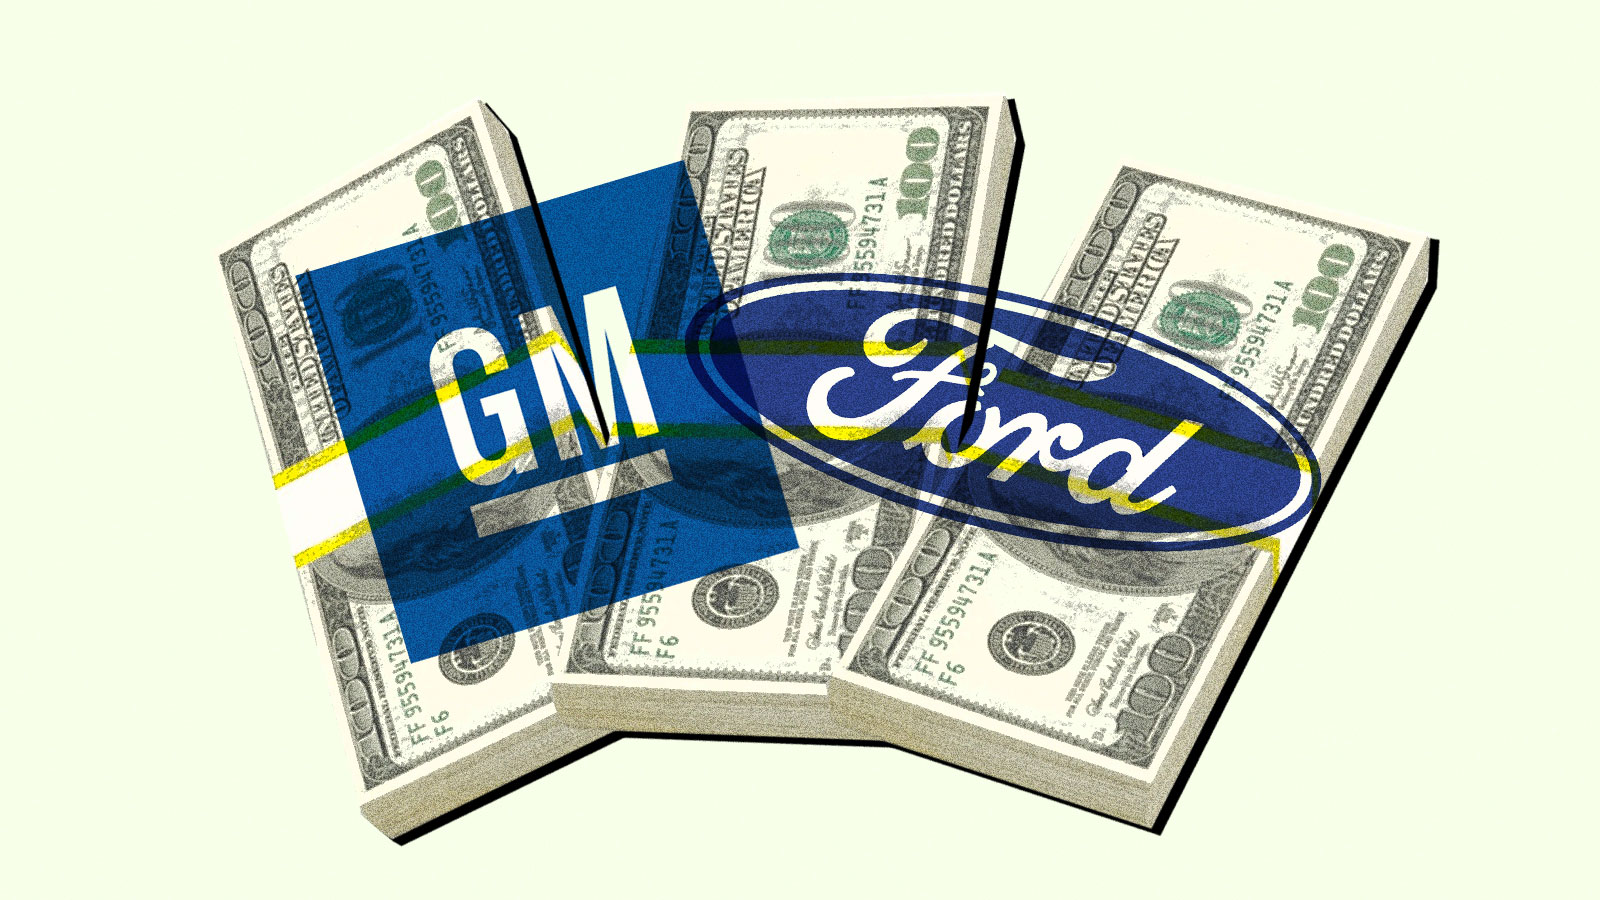 General Motors and Ford logos over a pile of money